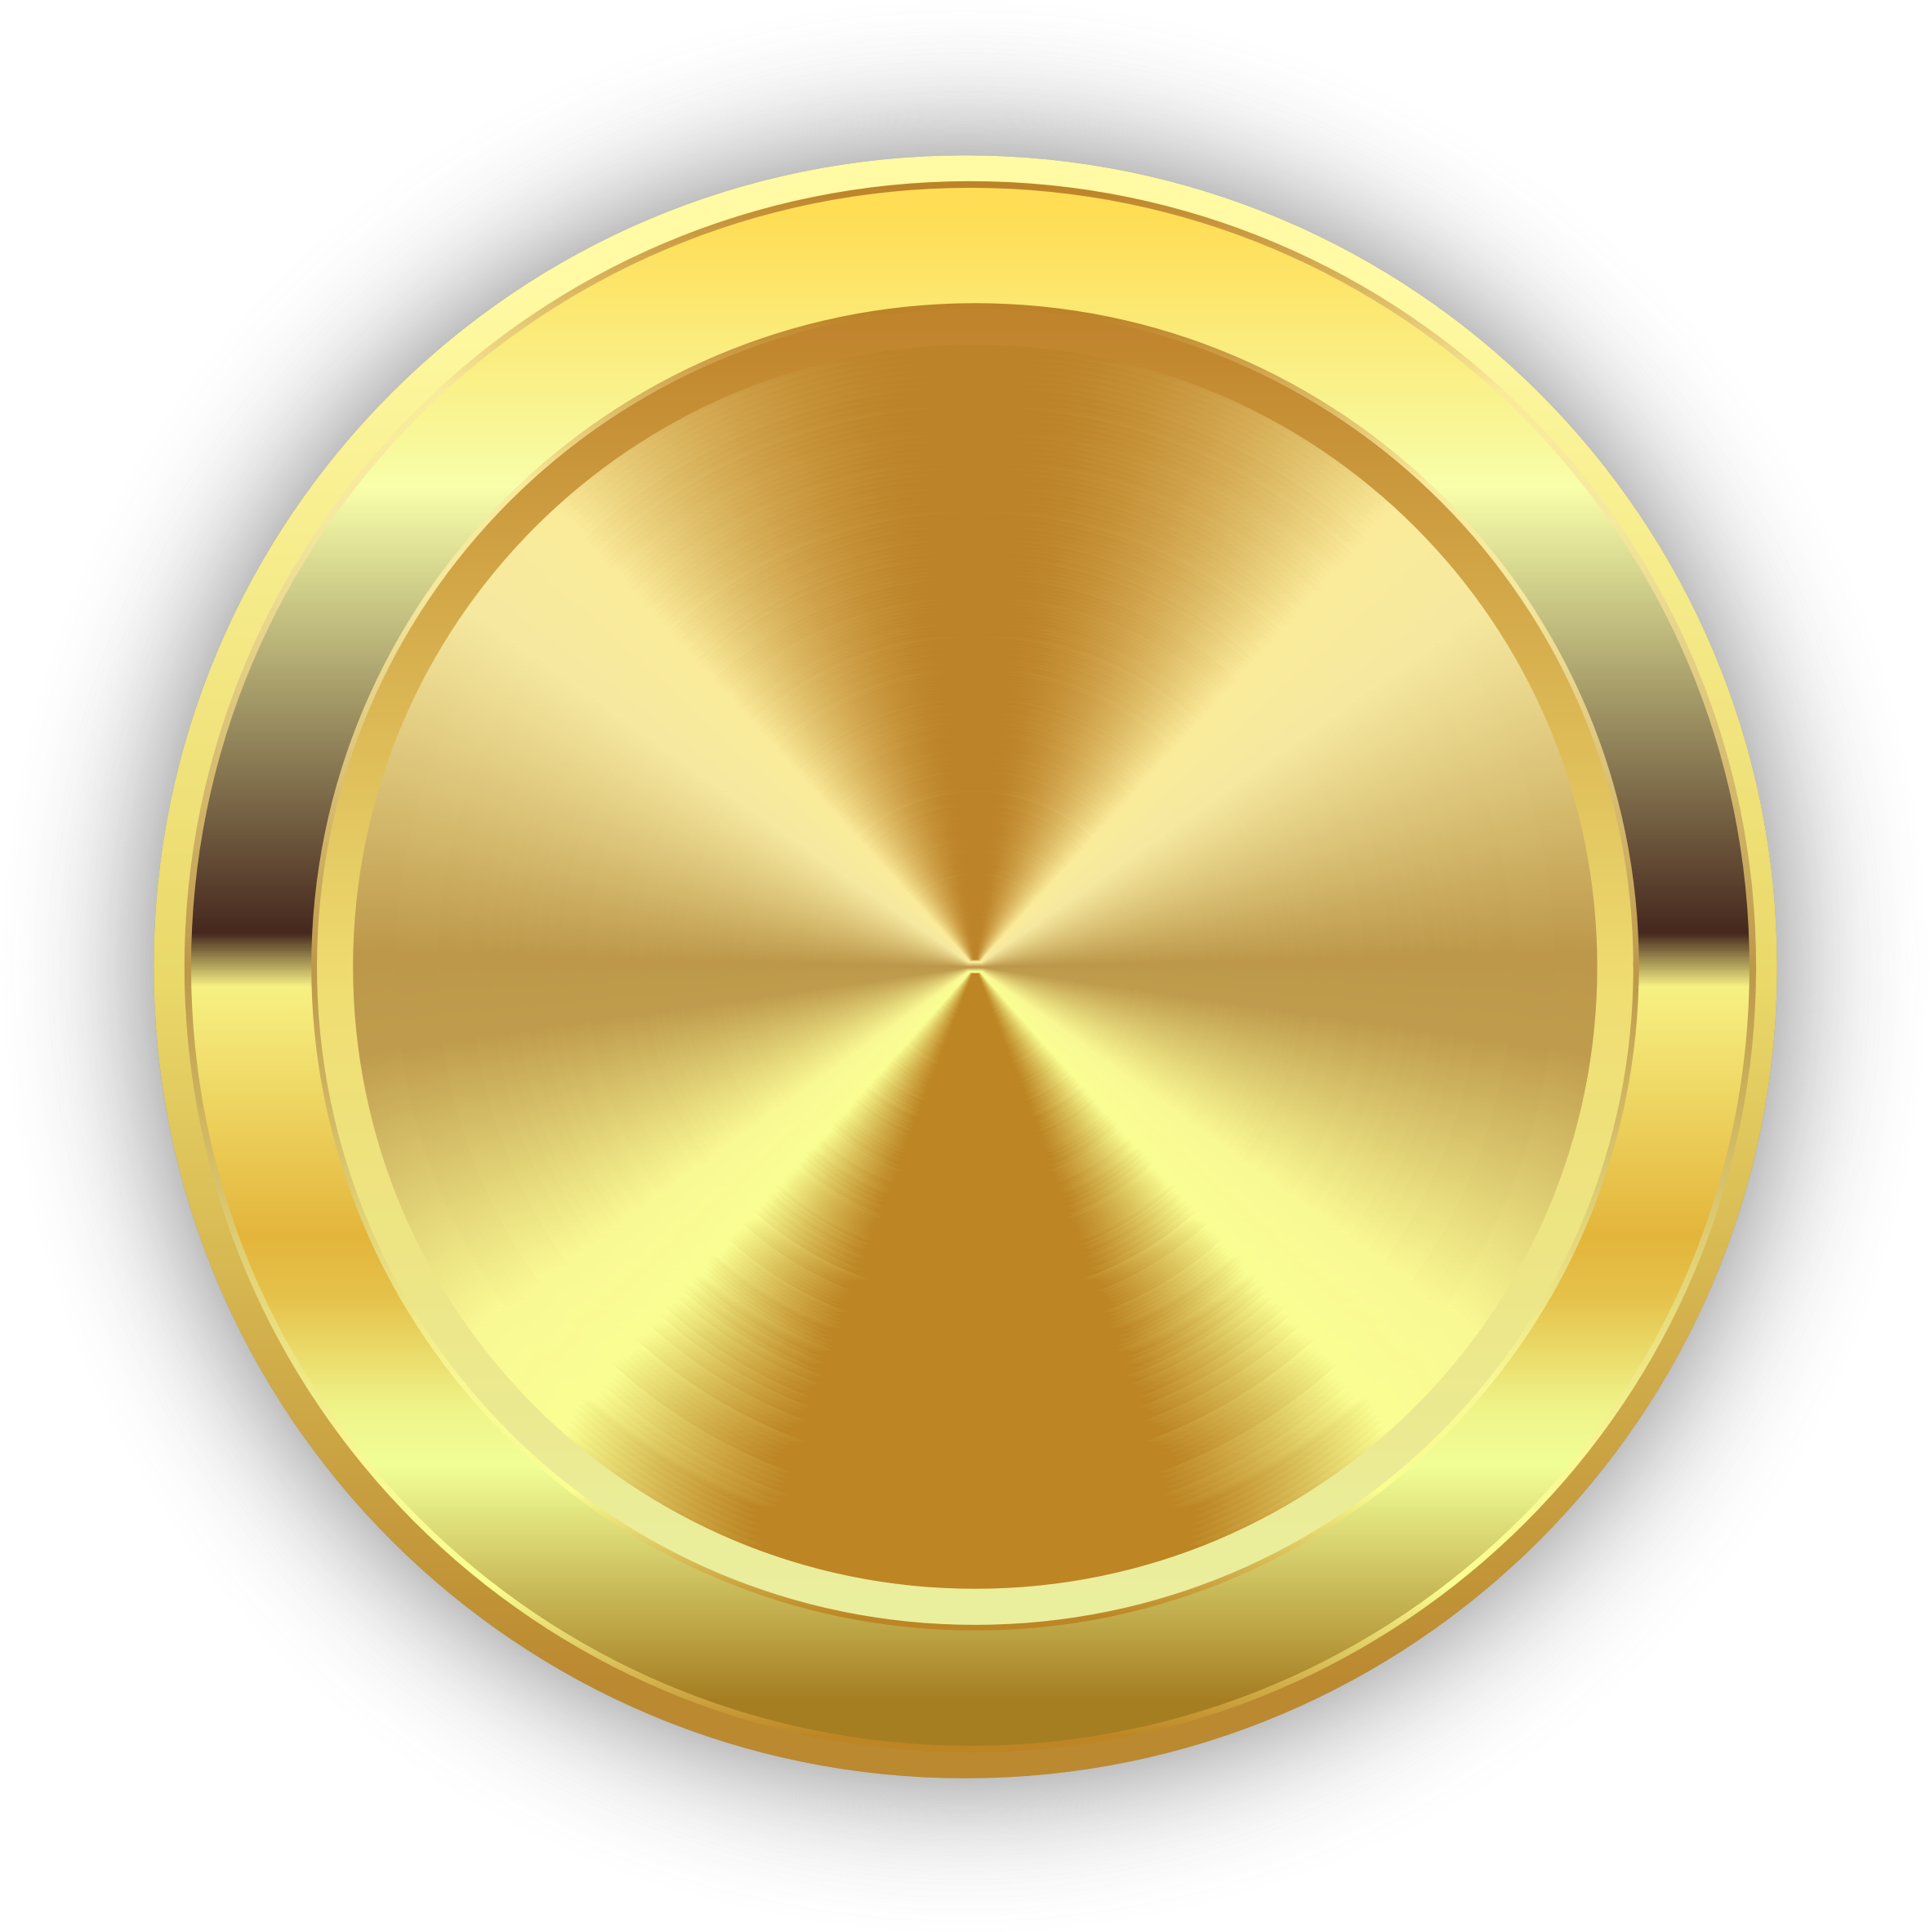 Round Golden Badge by tasper